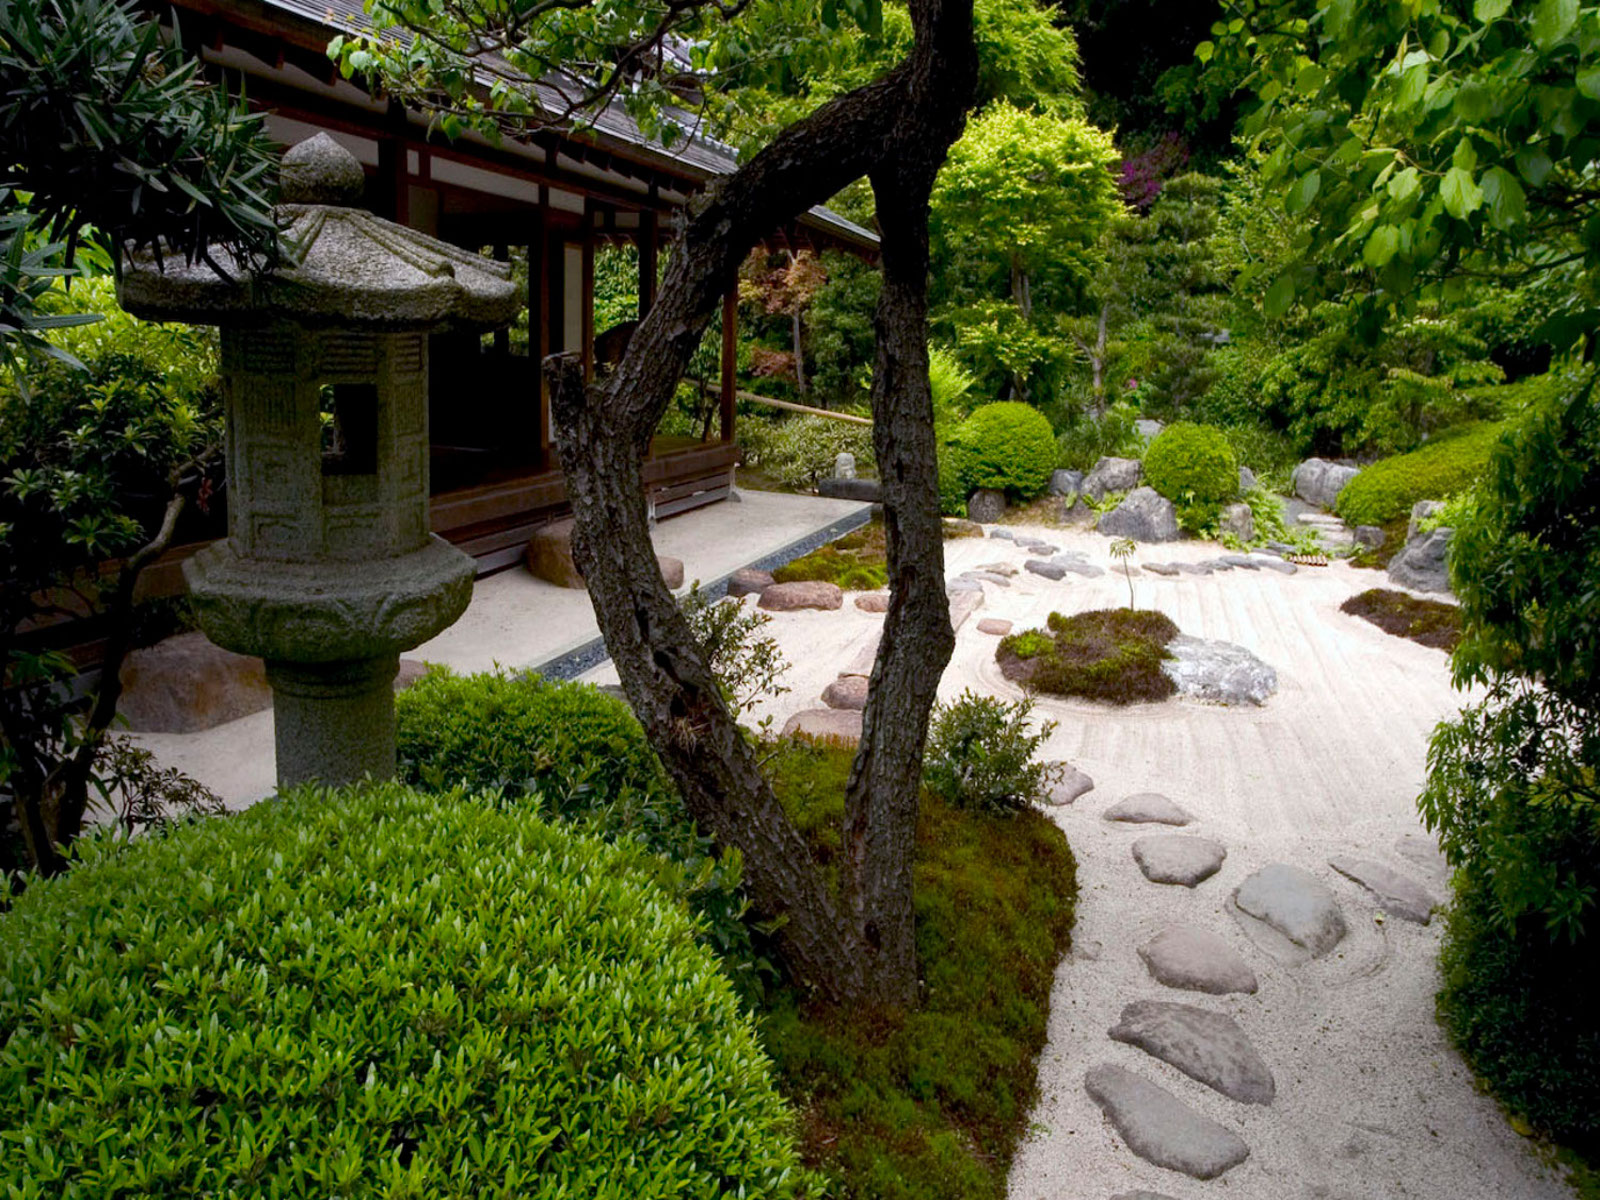 Zen garden wallpaper hd wallpaper pictures gallery for Japanese landscape design